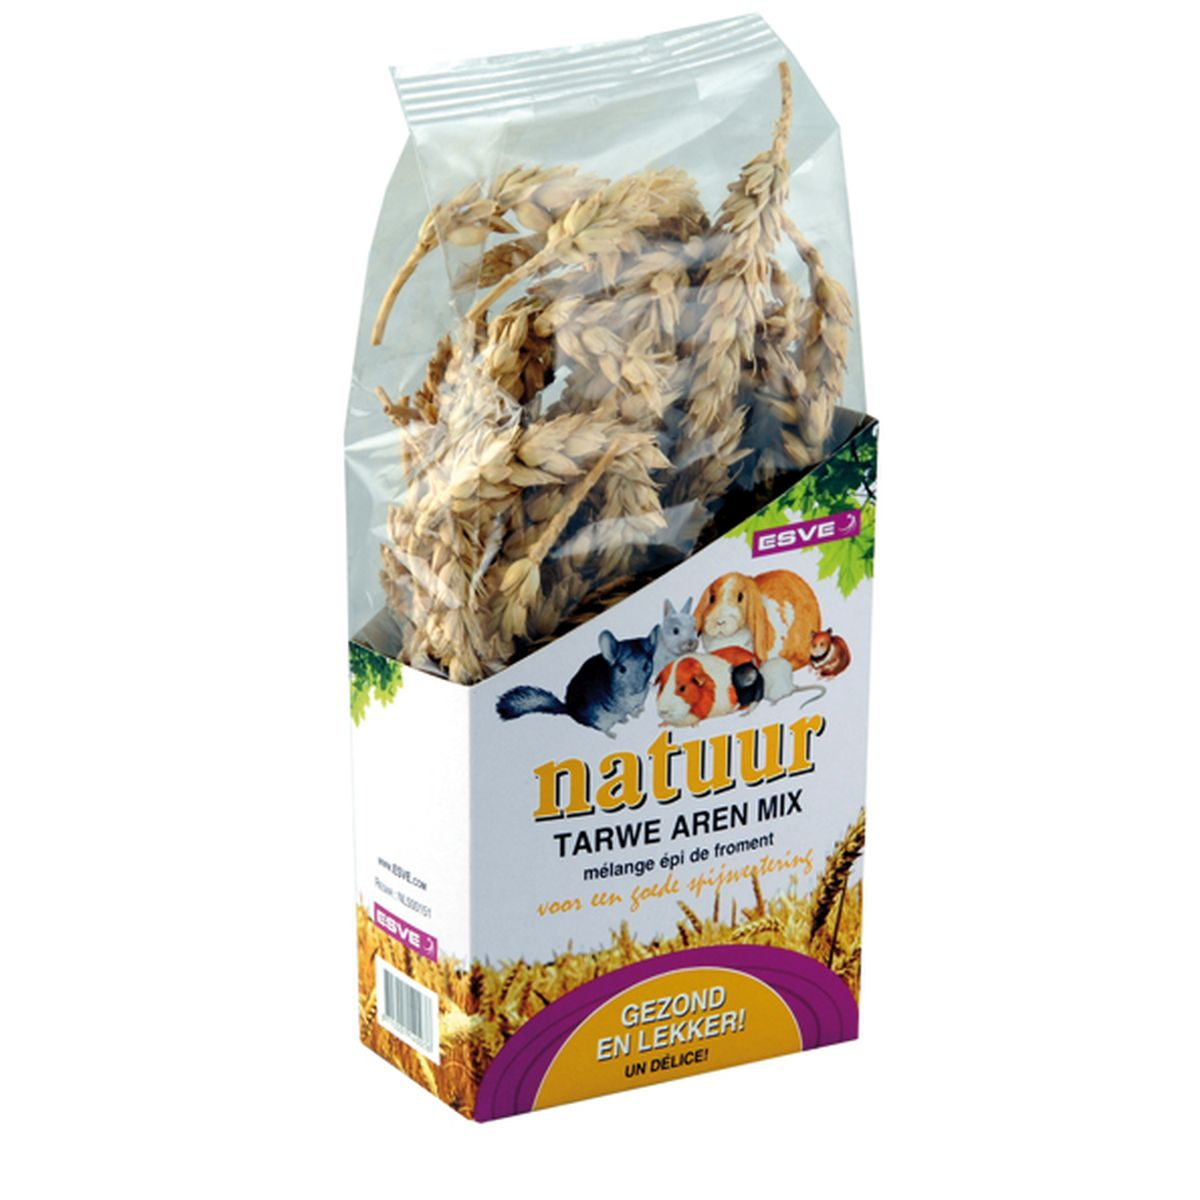 ES NATUUR TARWE AREN MIX 90GR J 00002